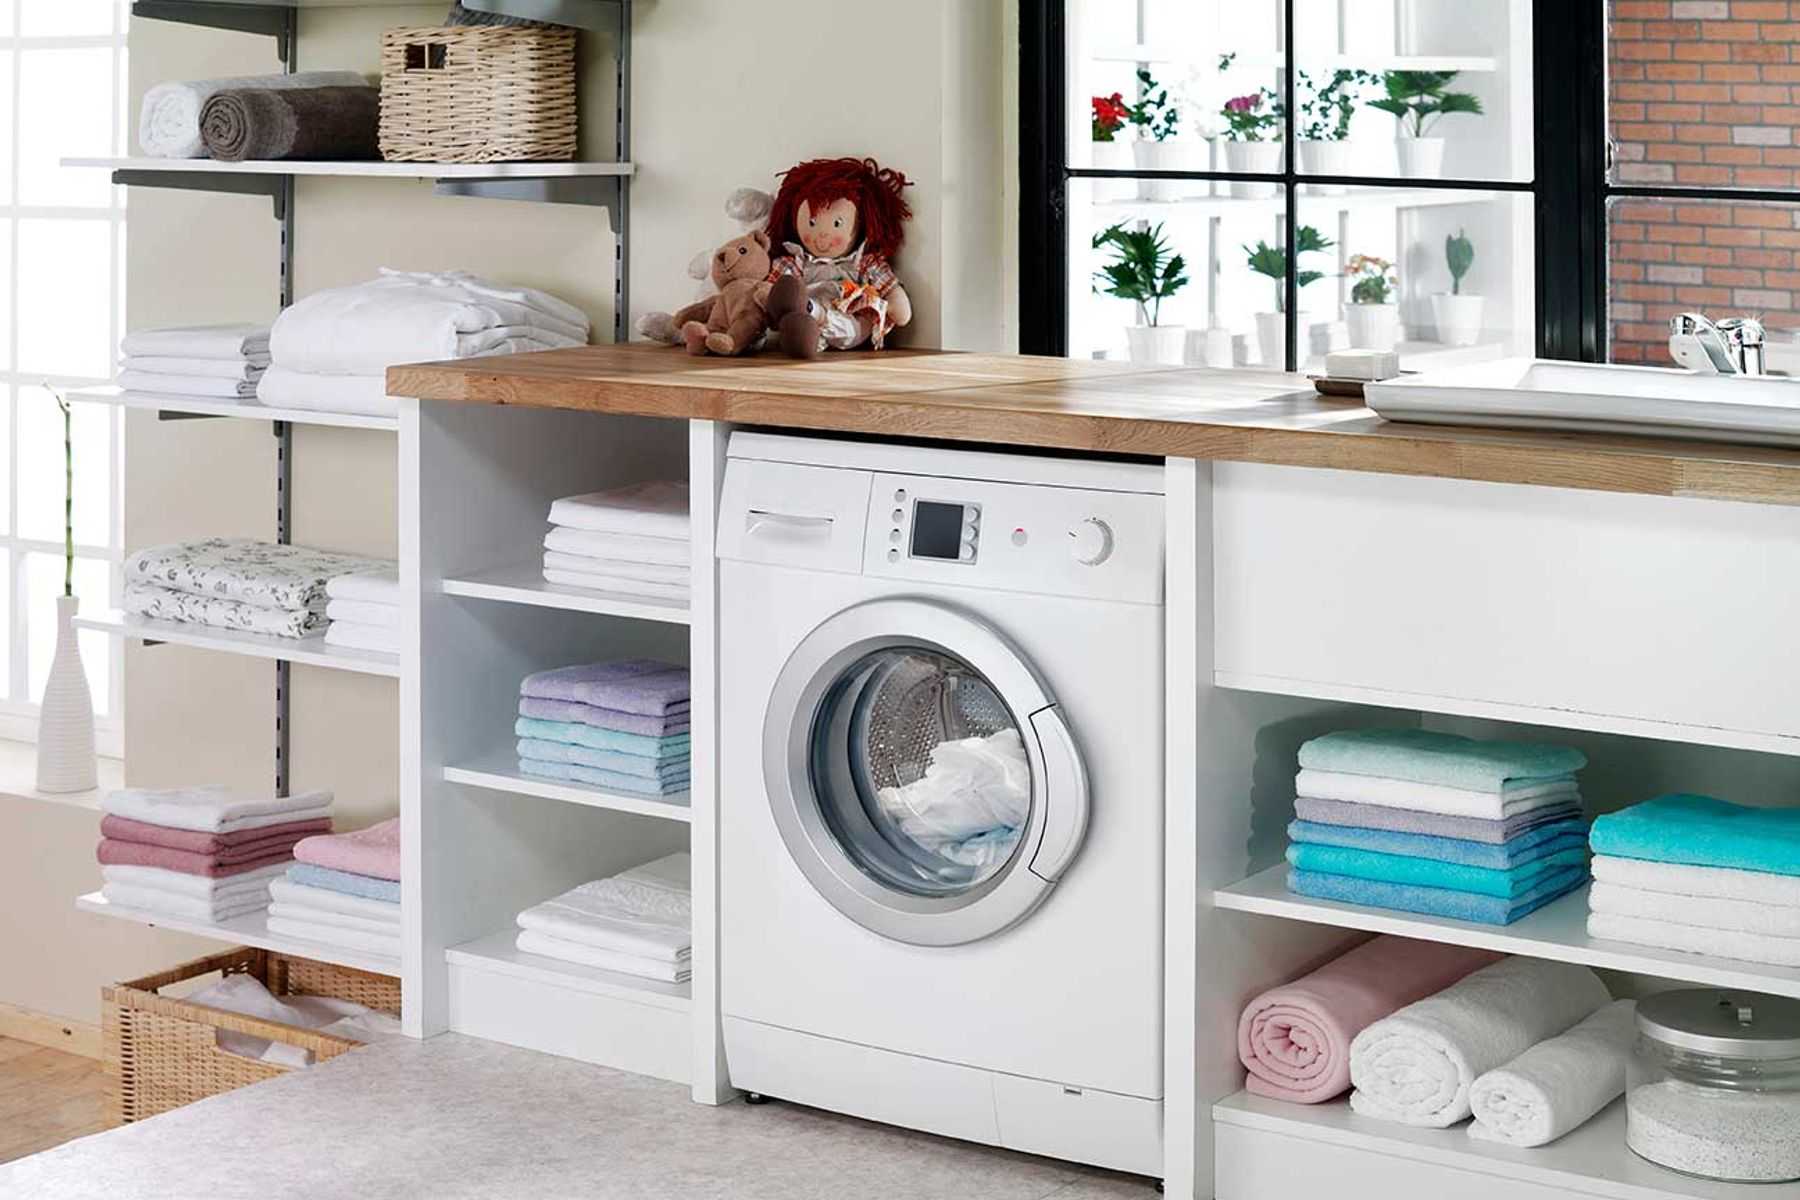 Utility room, featuring a washing machine, shelving and a sink